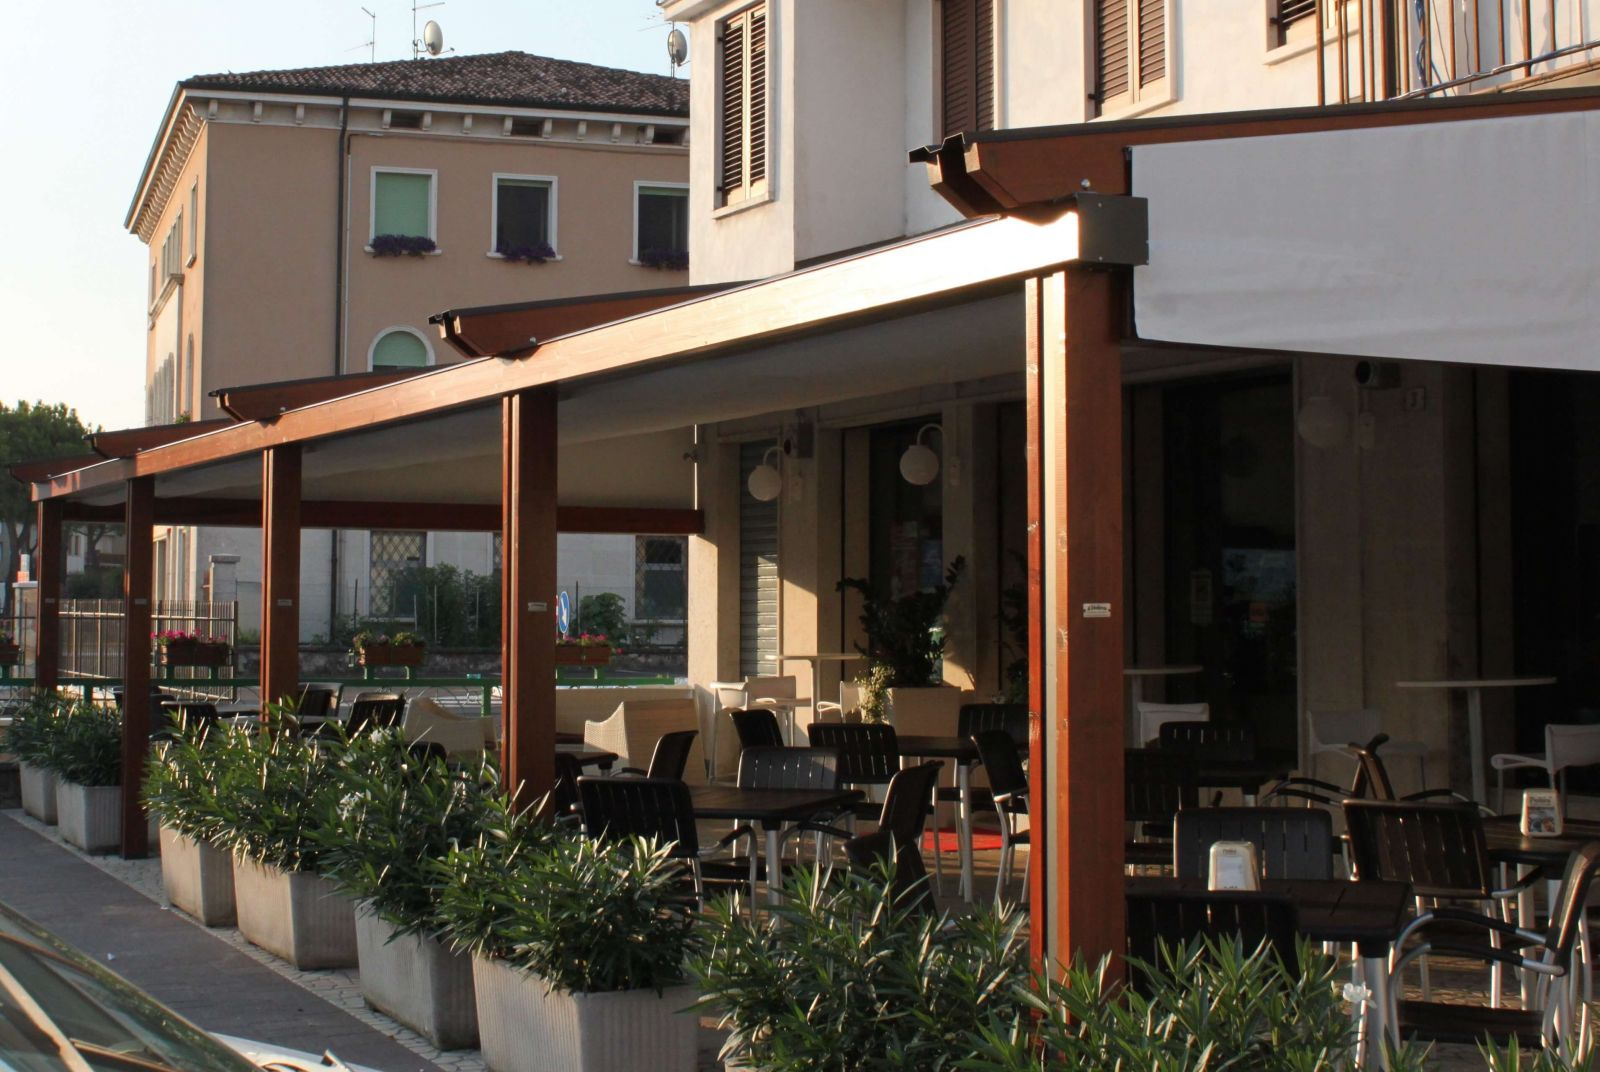 Wood Plus Sunair Pergola on Restaurant.jpg